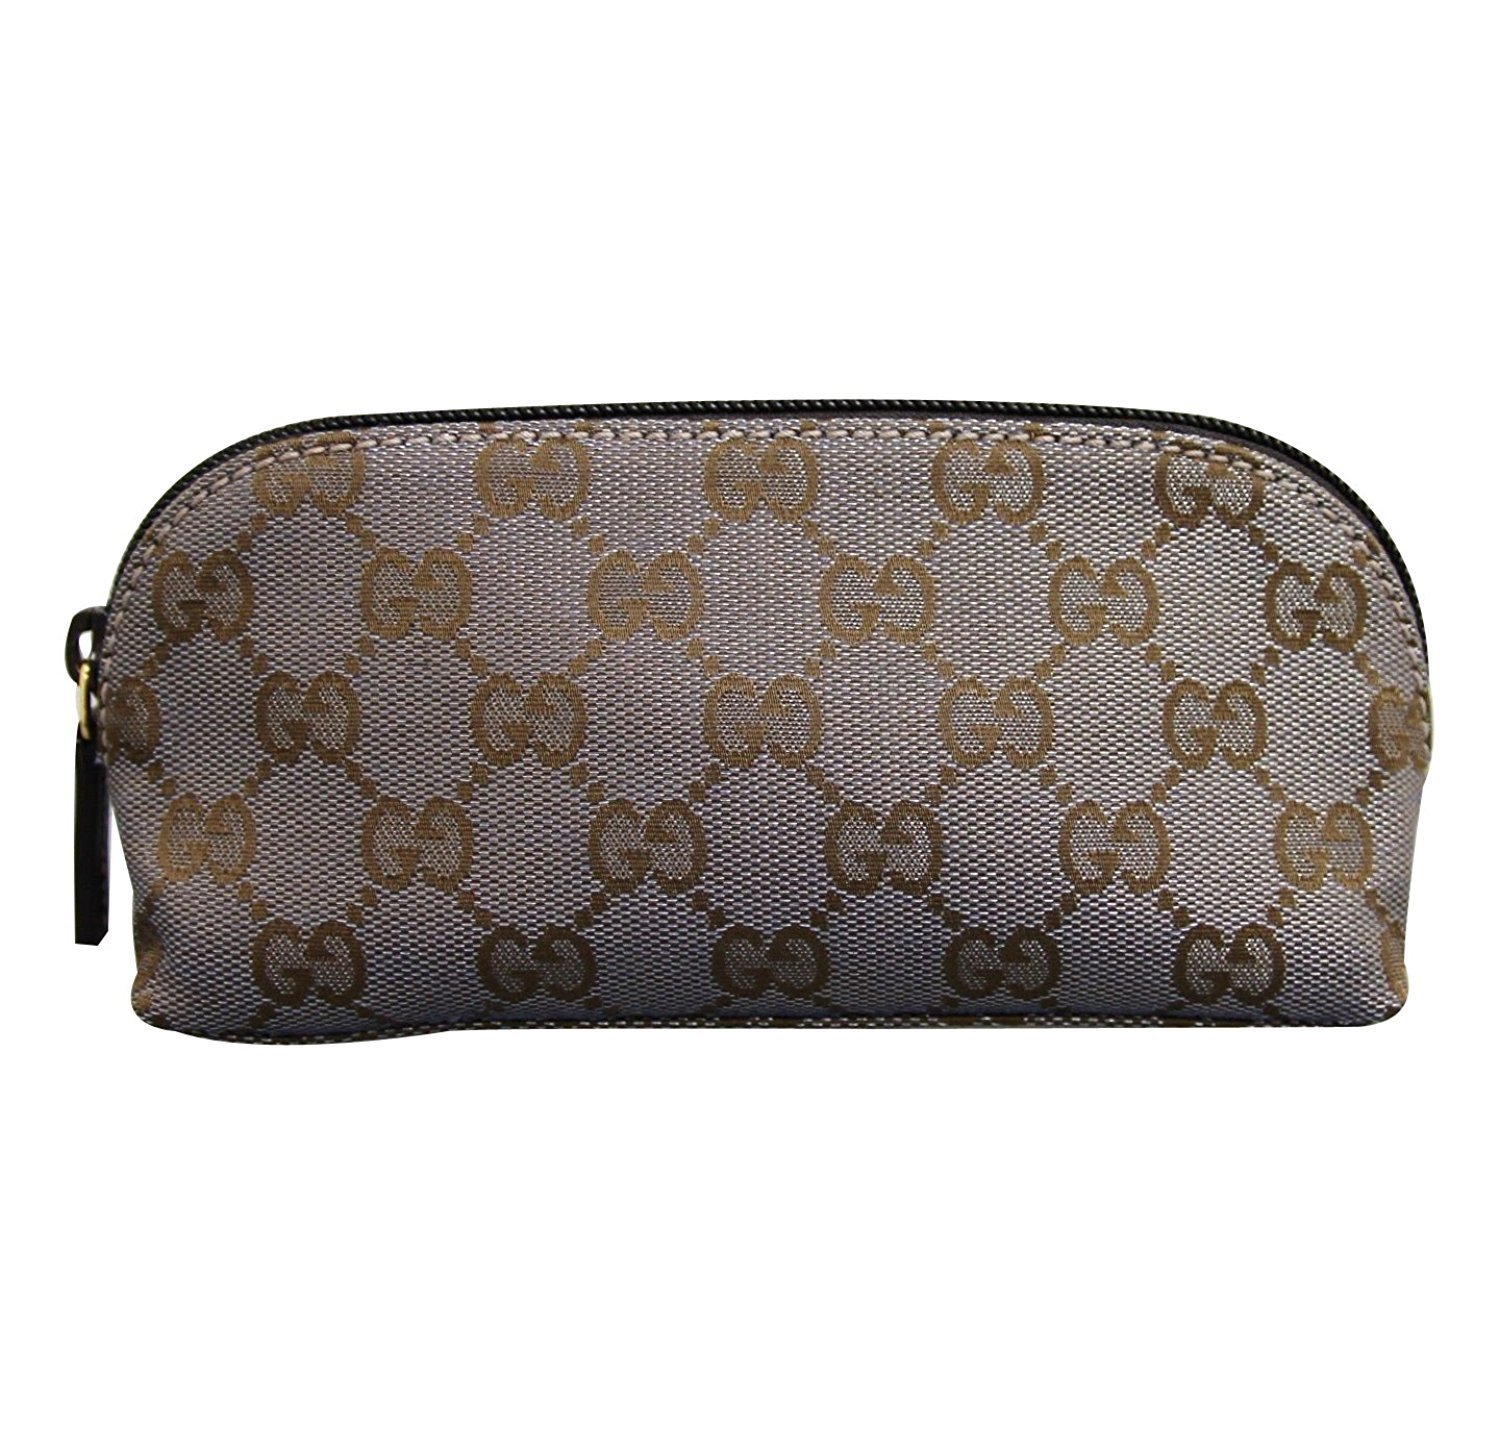 Gucci Brown Silver Makeup Case Canvas Cosmetic Bag 272367 8170 by Gucci